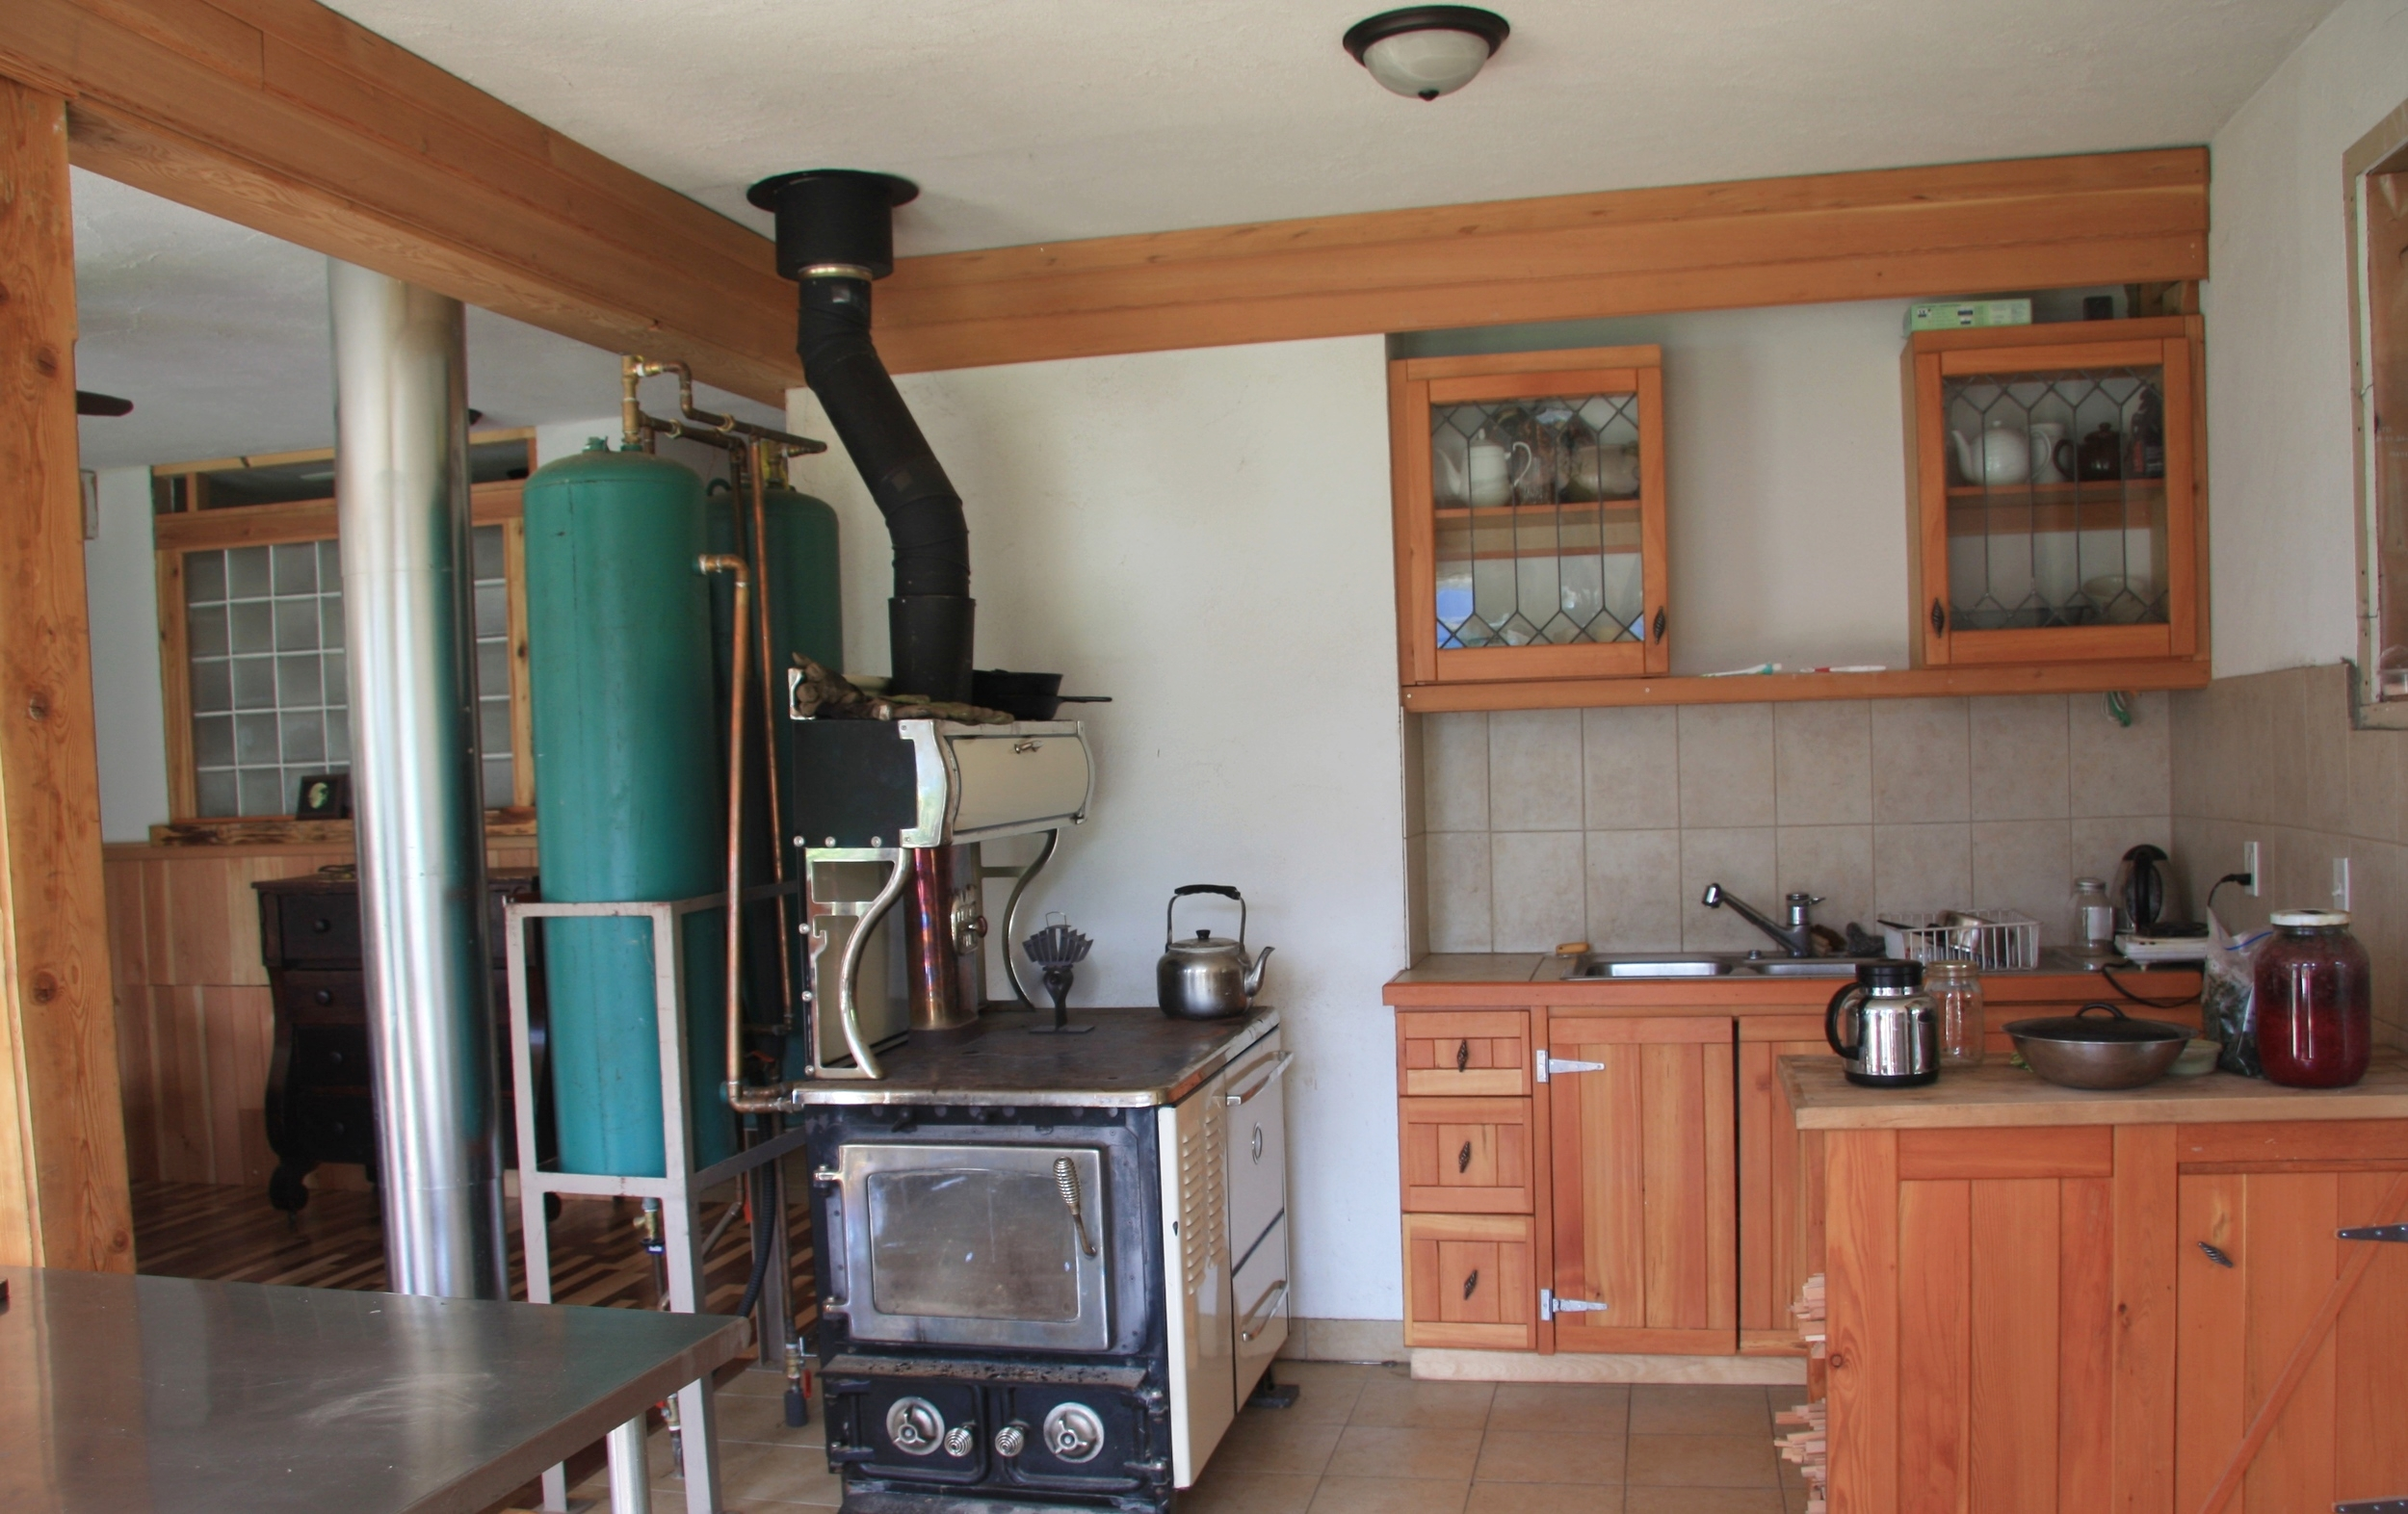 Grandma's kitchen features a flame view wood burning stove.